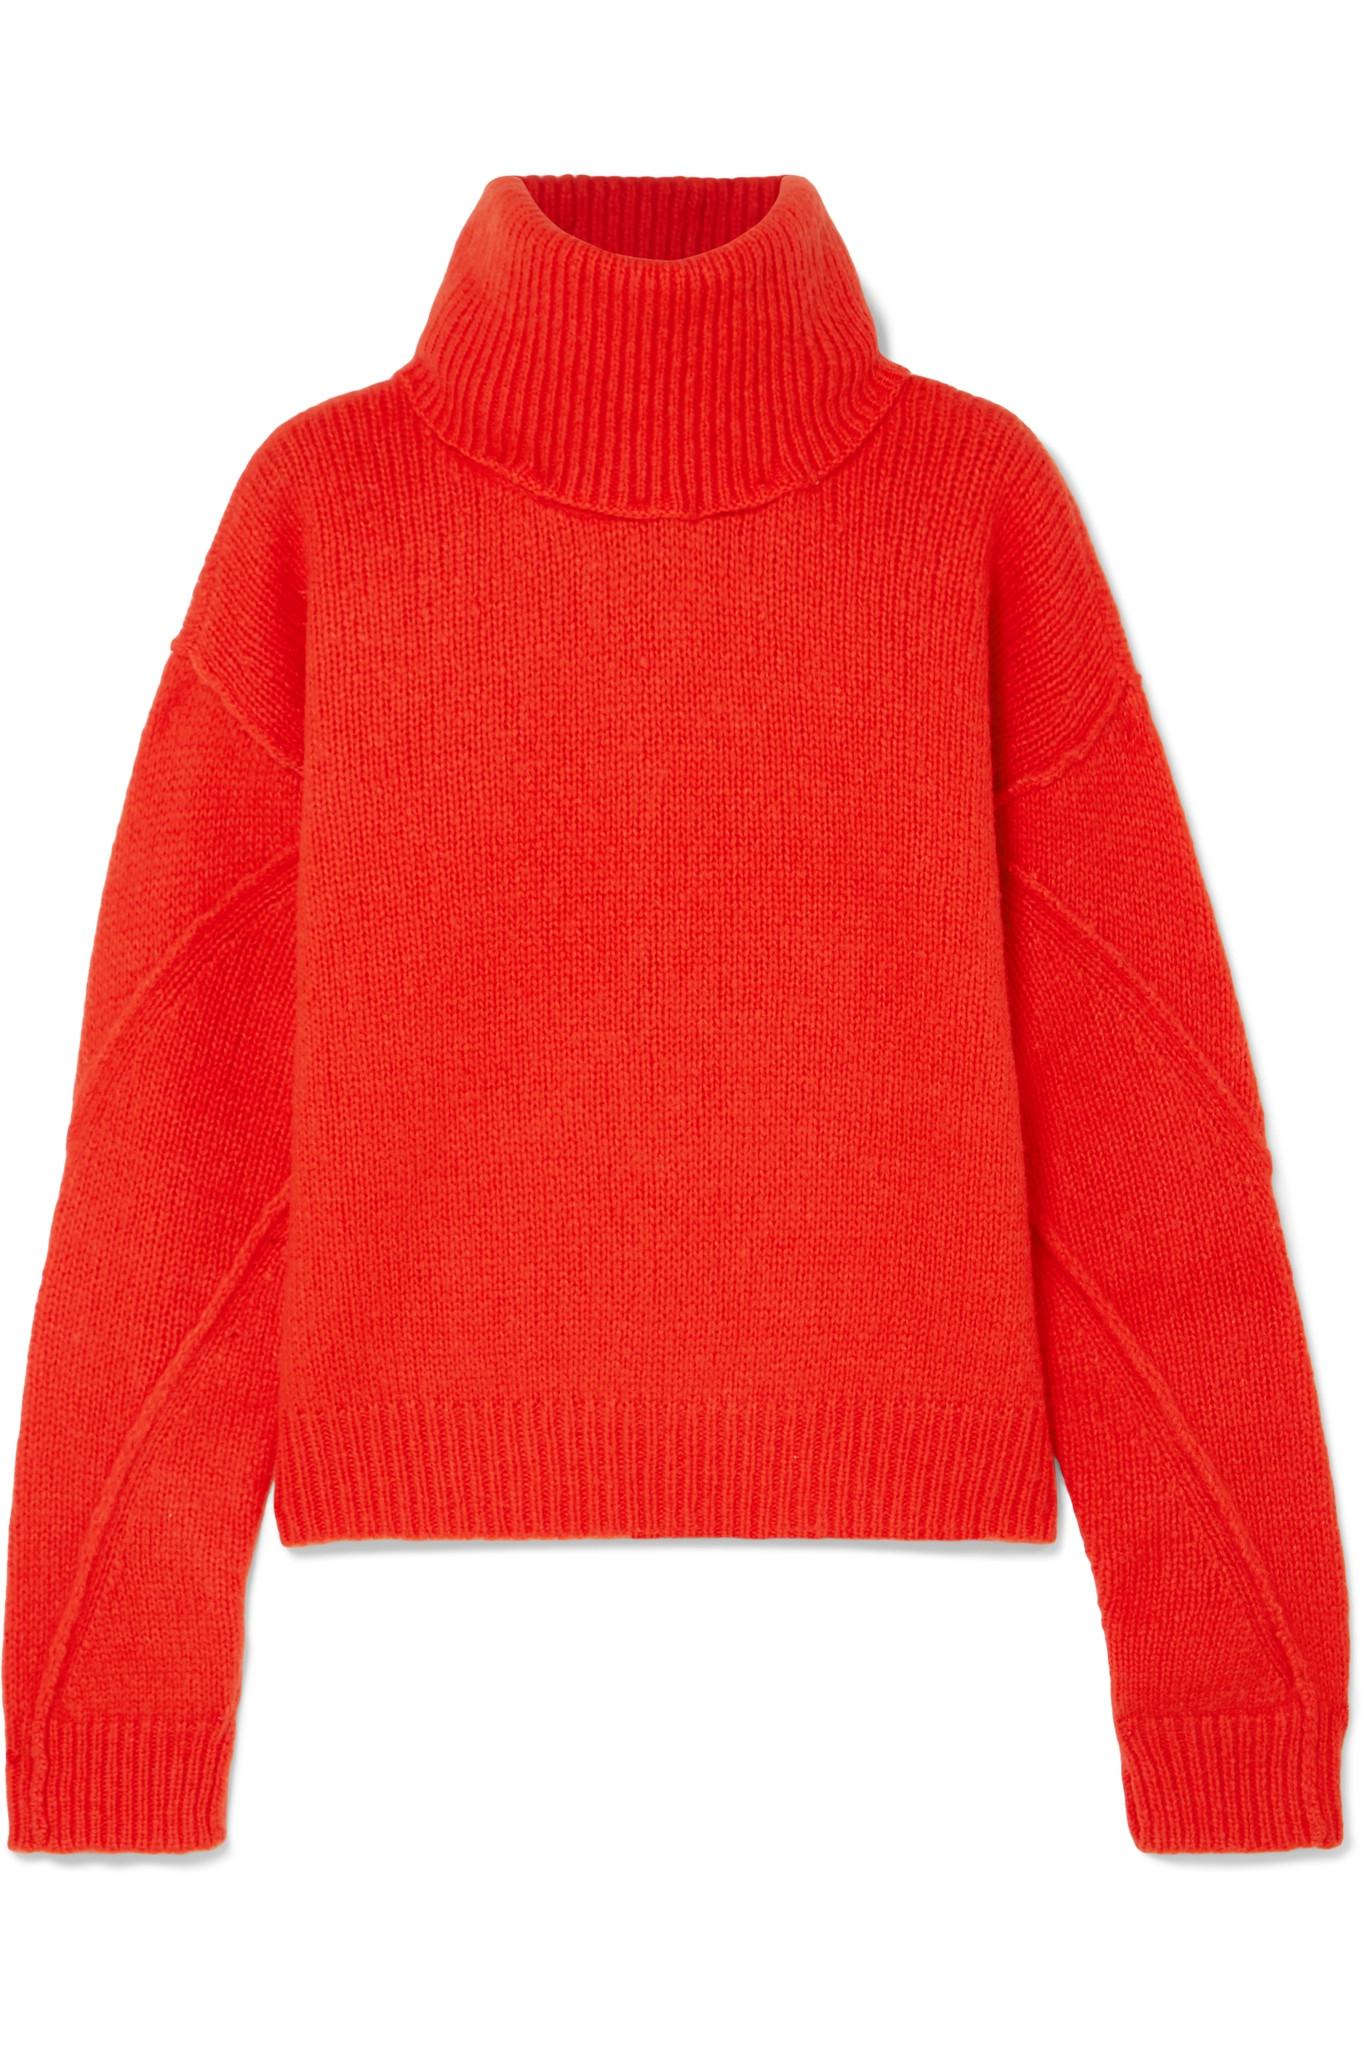 f7c24d8da9 Tory Burch Eva Convertible Oversized Wool-blend Turtleneck Sweater ...